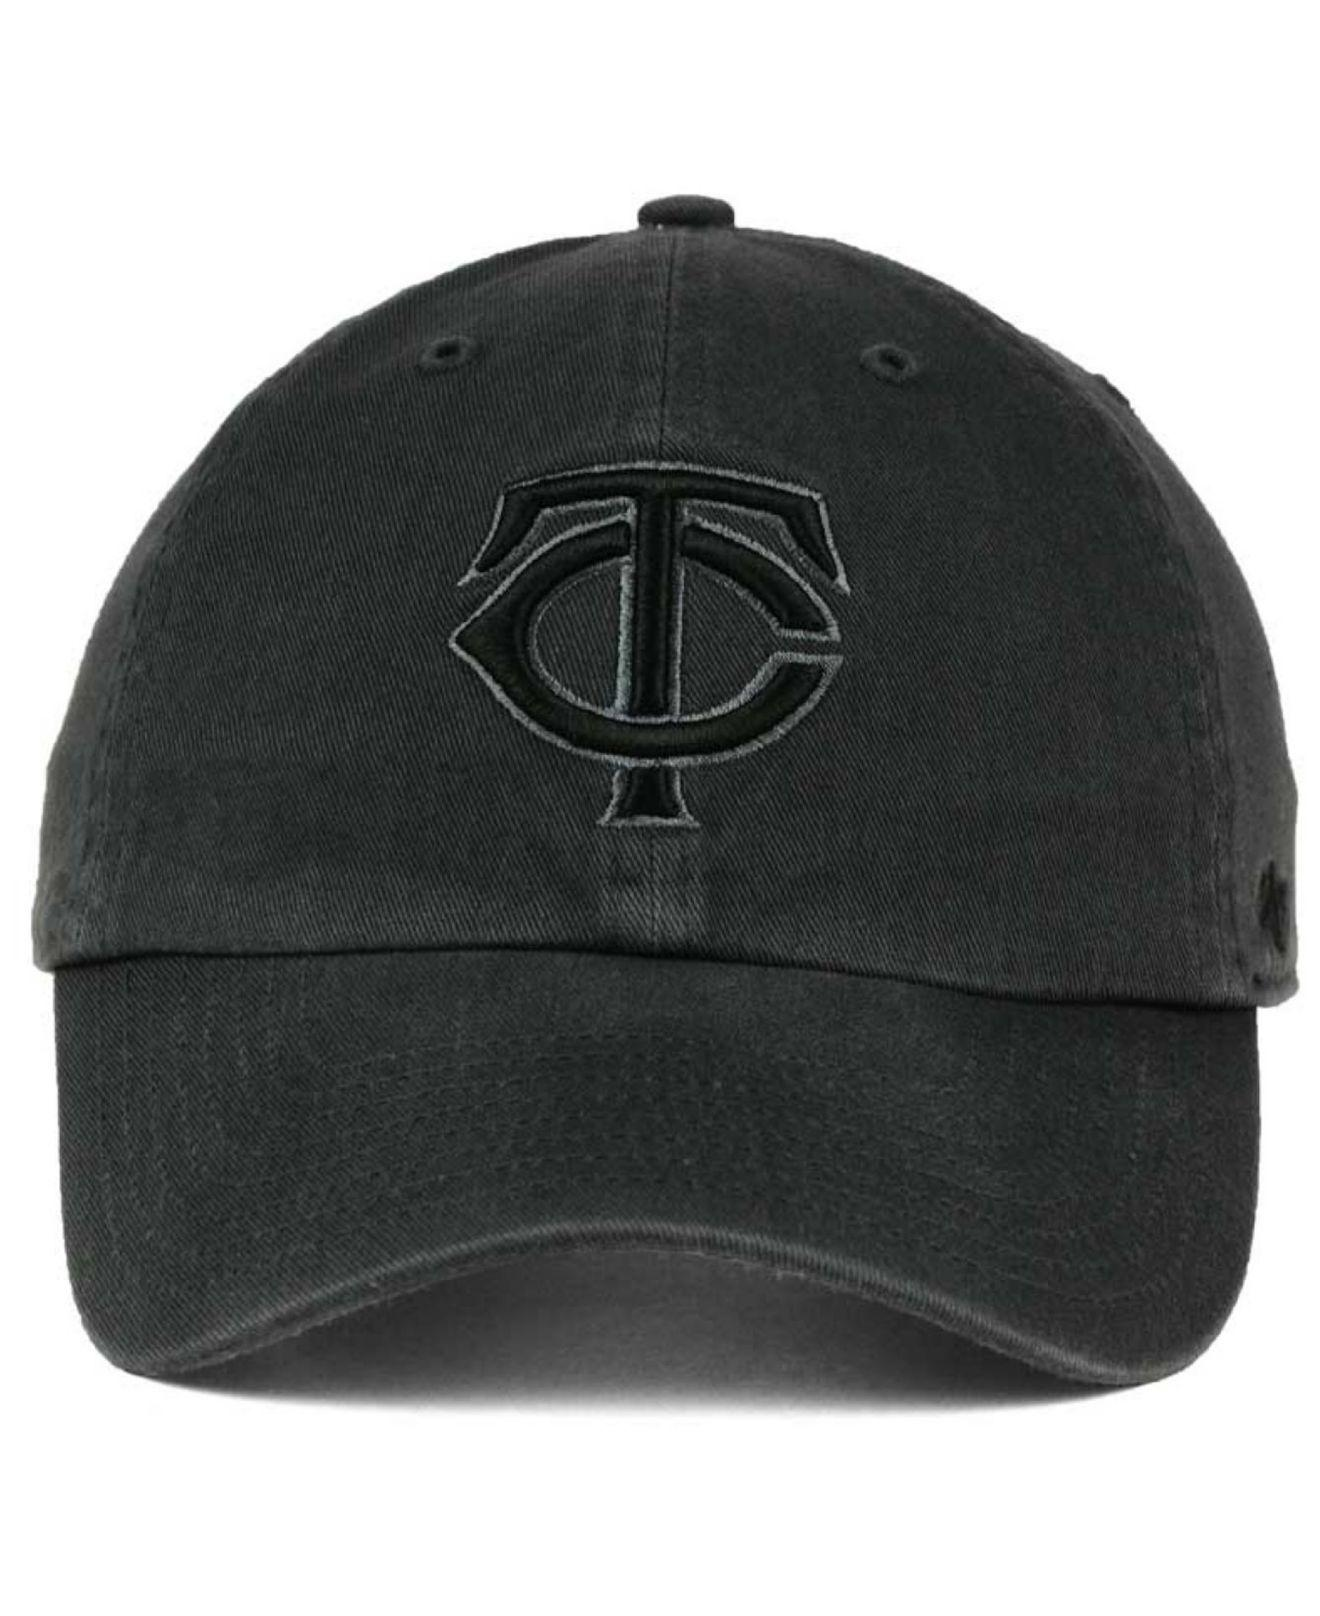 huge selection of ce324 1a3c9 ... switzerland lyst 47 brand minnesota twins charcoal clean up cap in  black for men ccb29 5ea2f